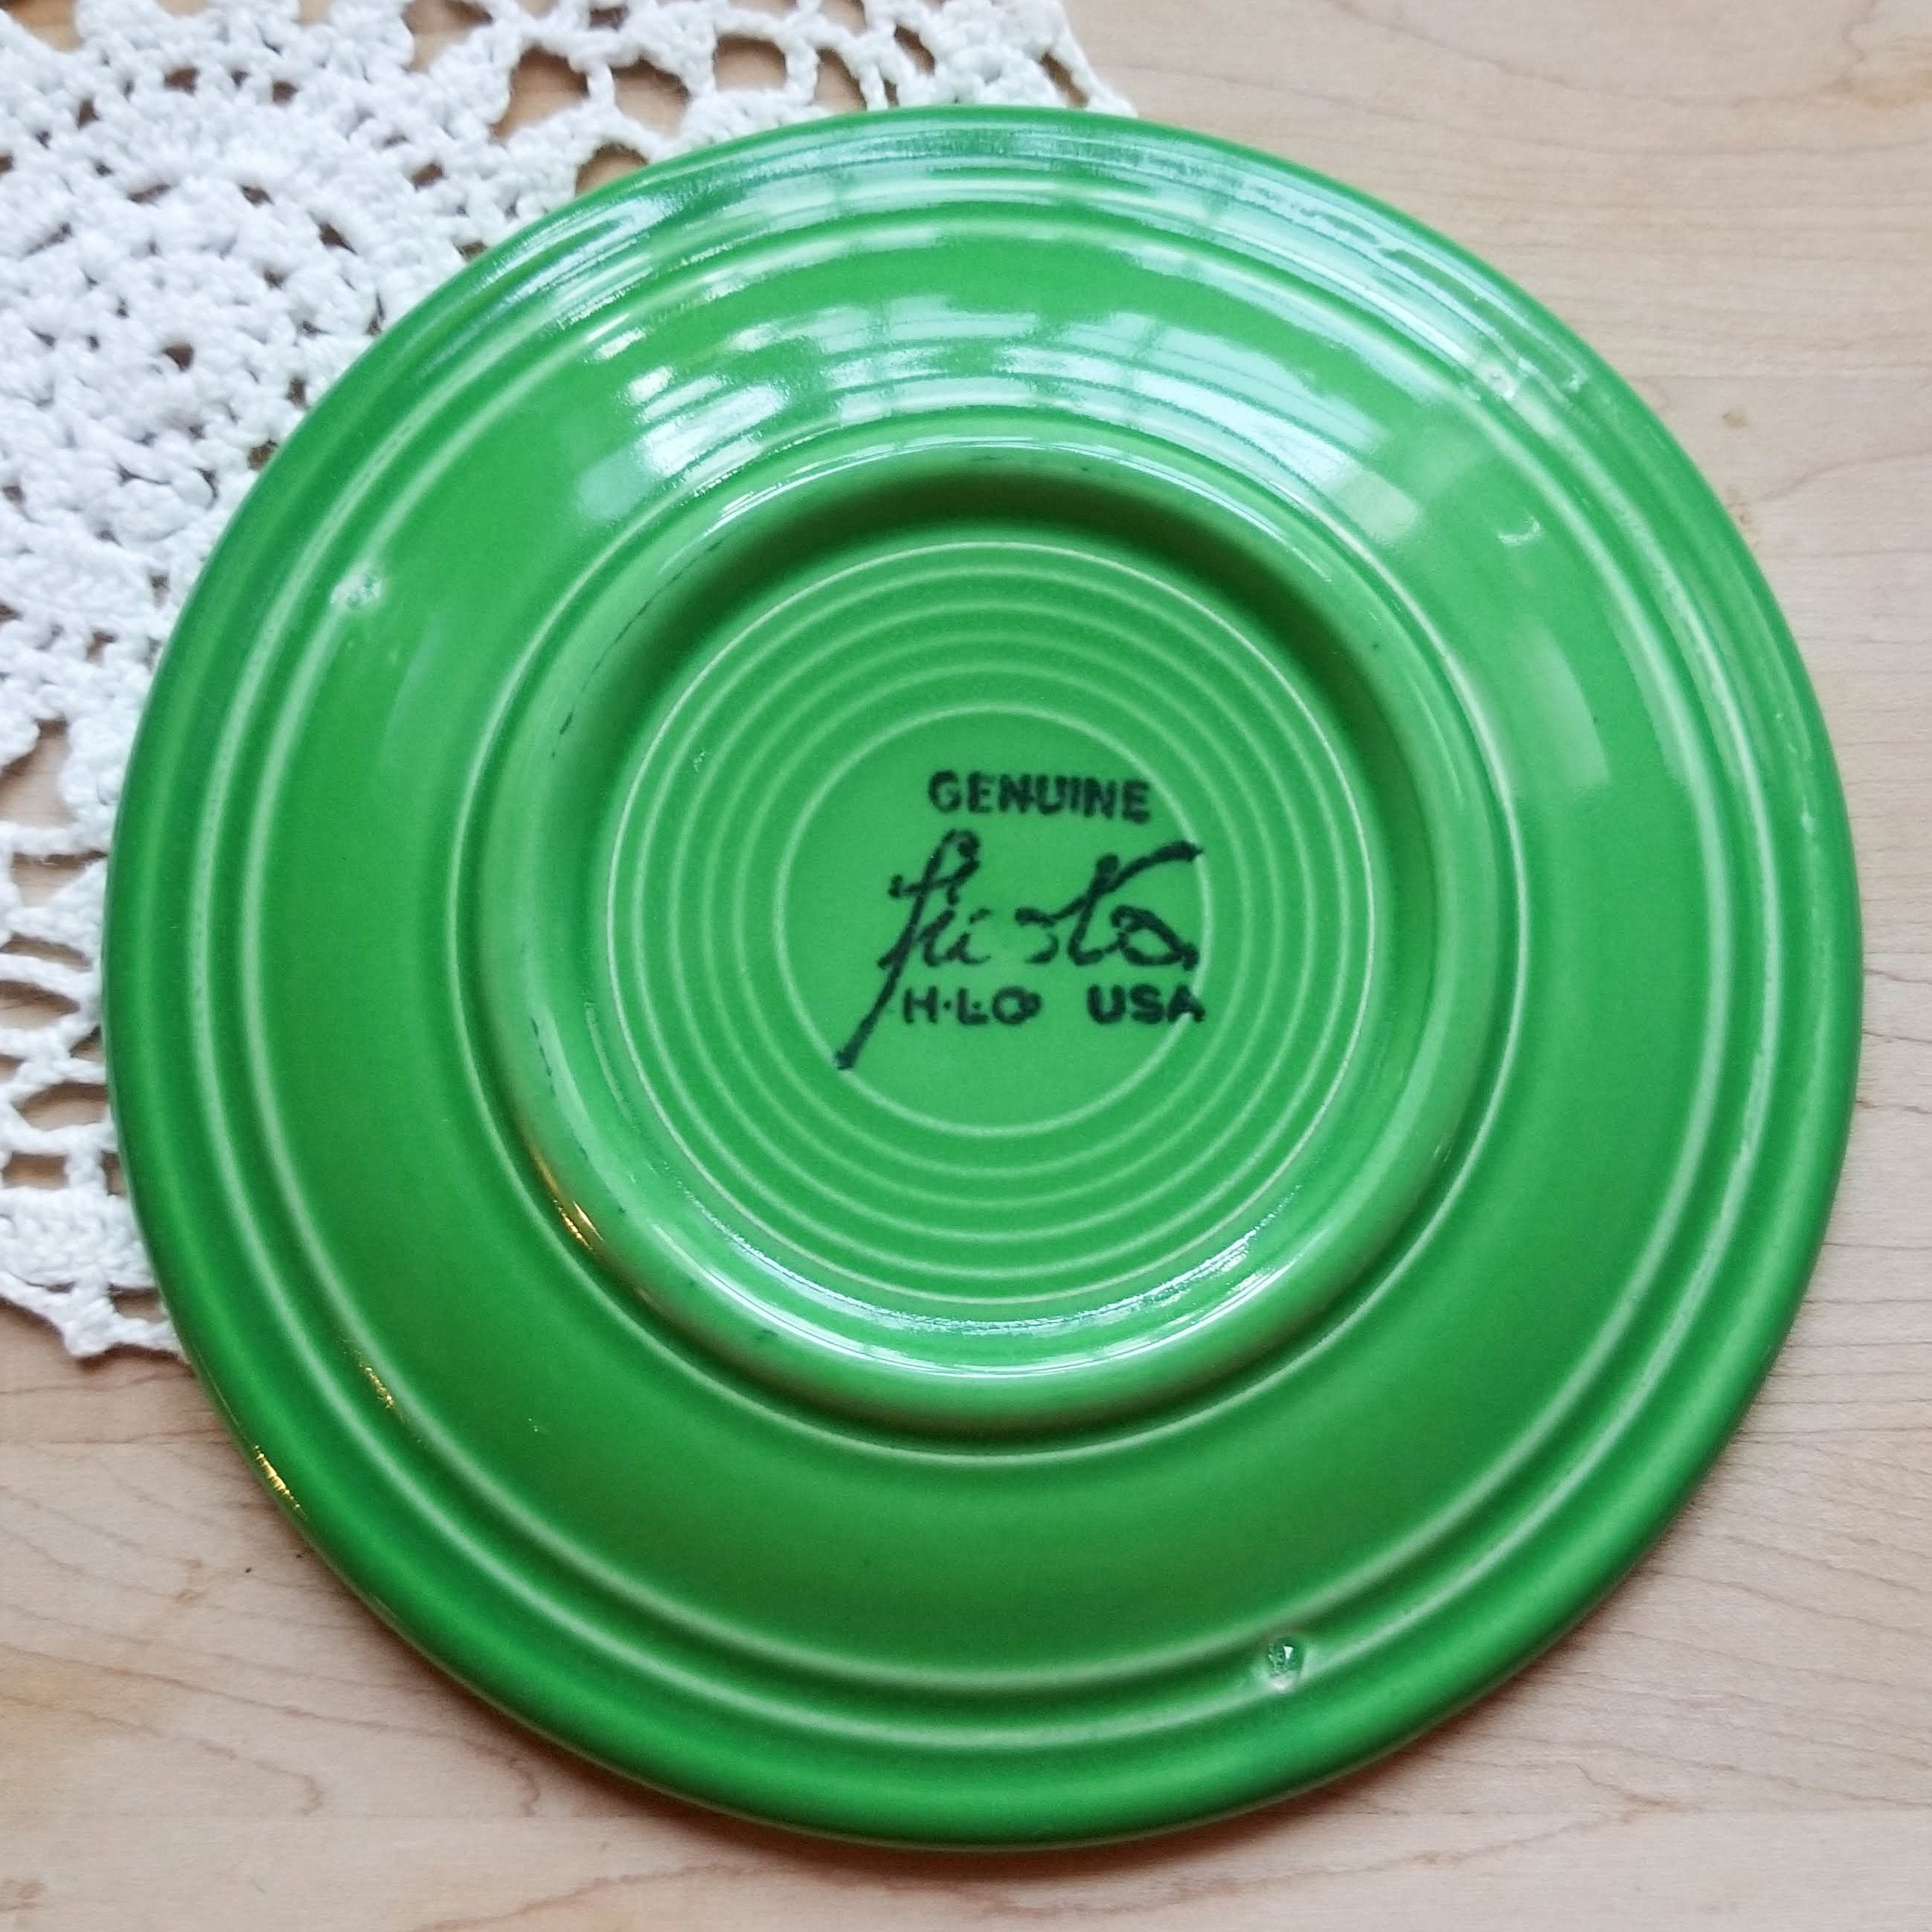 THREE Discontinued Original Bread & Butter Plate Fiesta Medium Green (Older) by HOMER LAUGHLIN